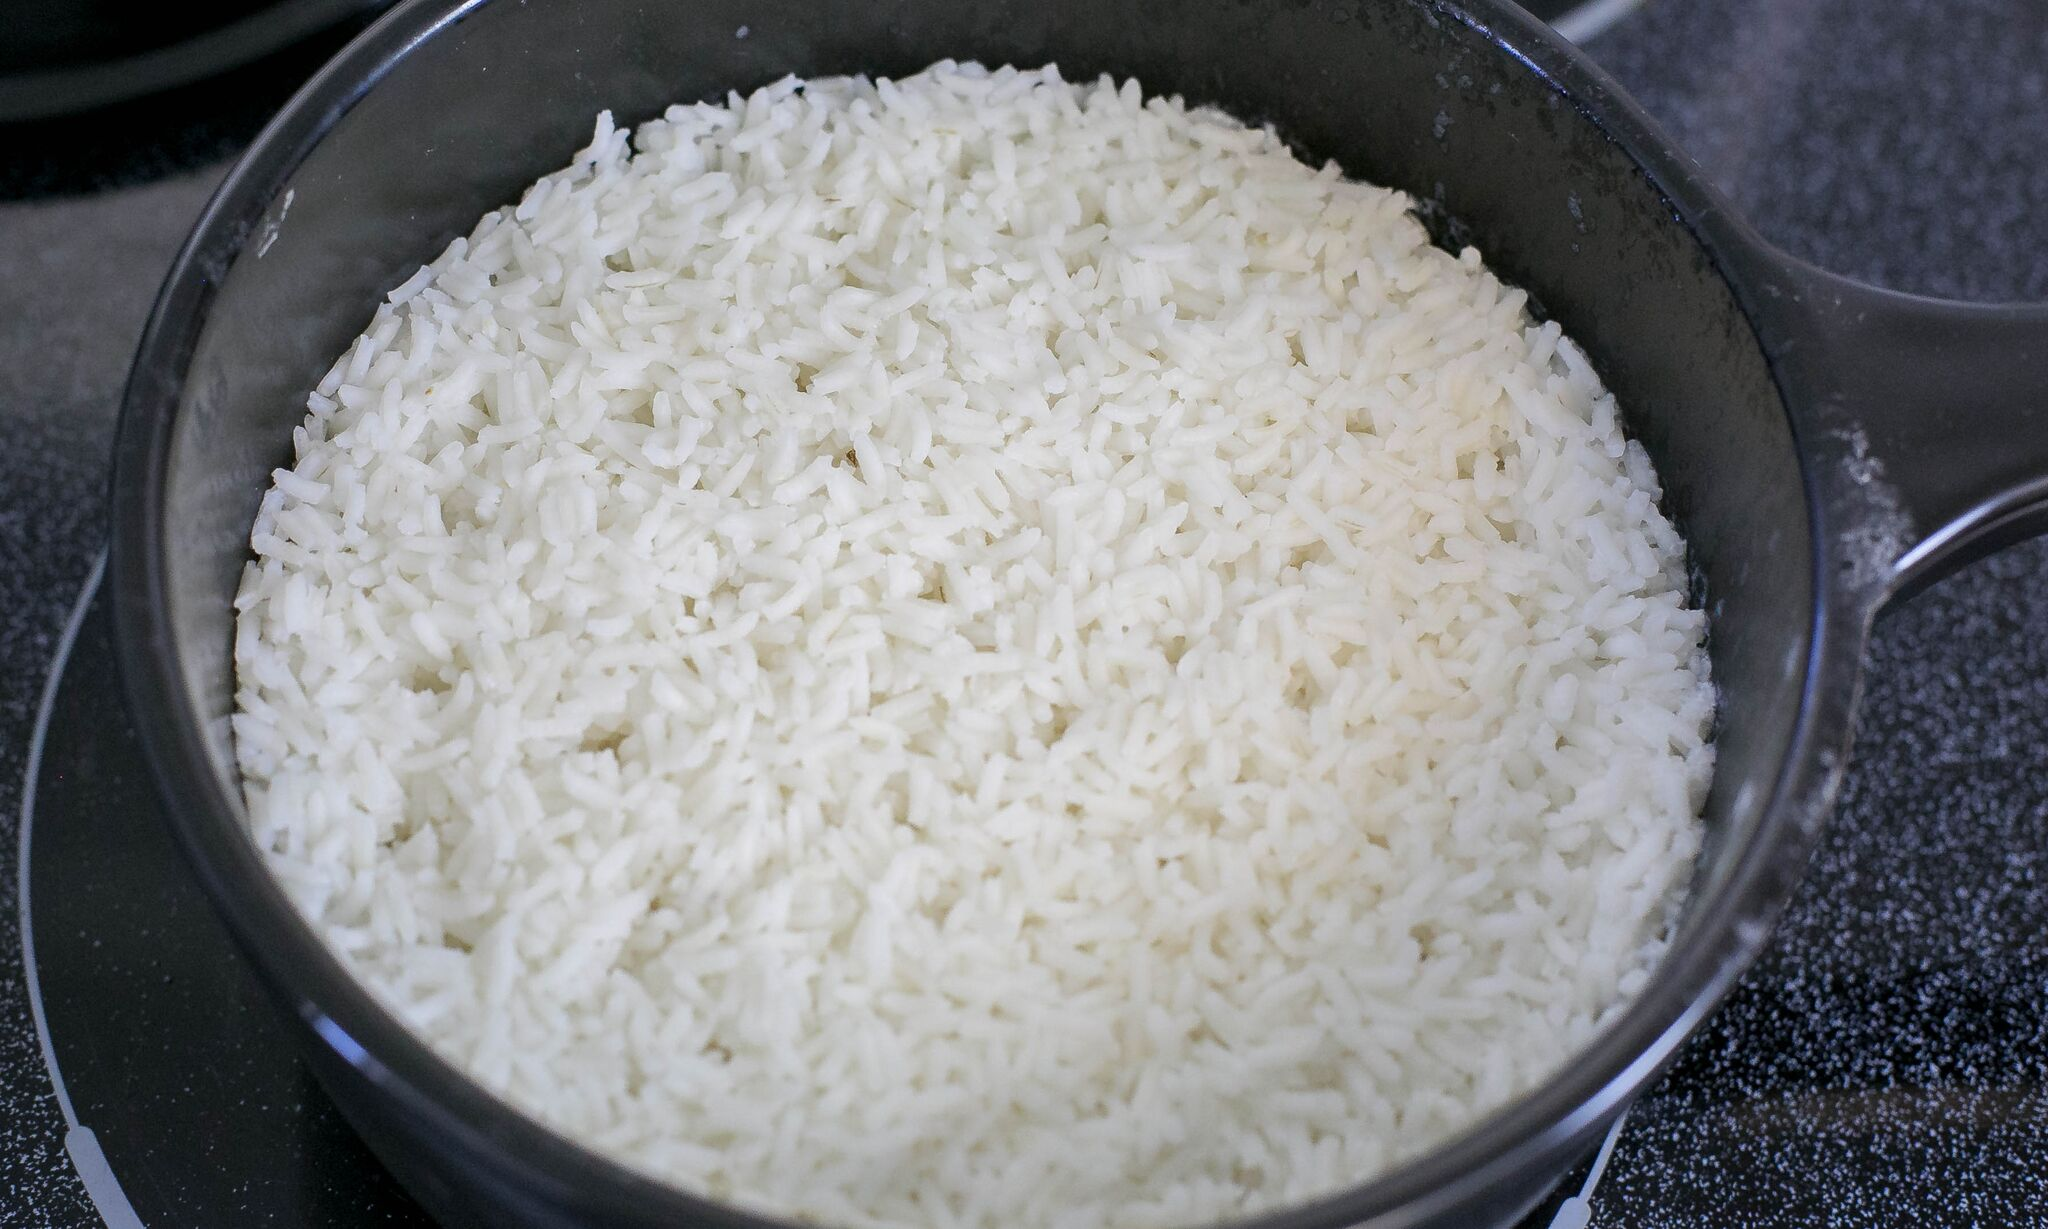 Cook rice on stove according to package directions.